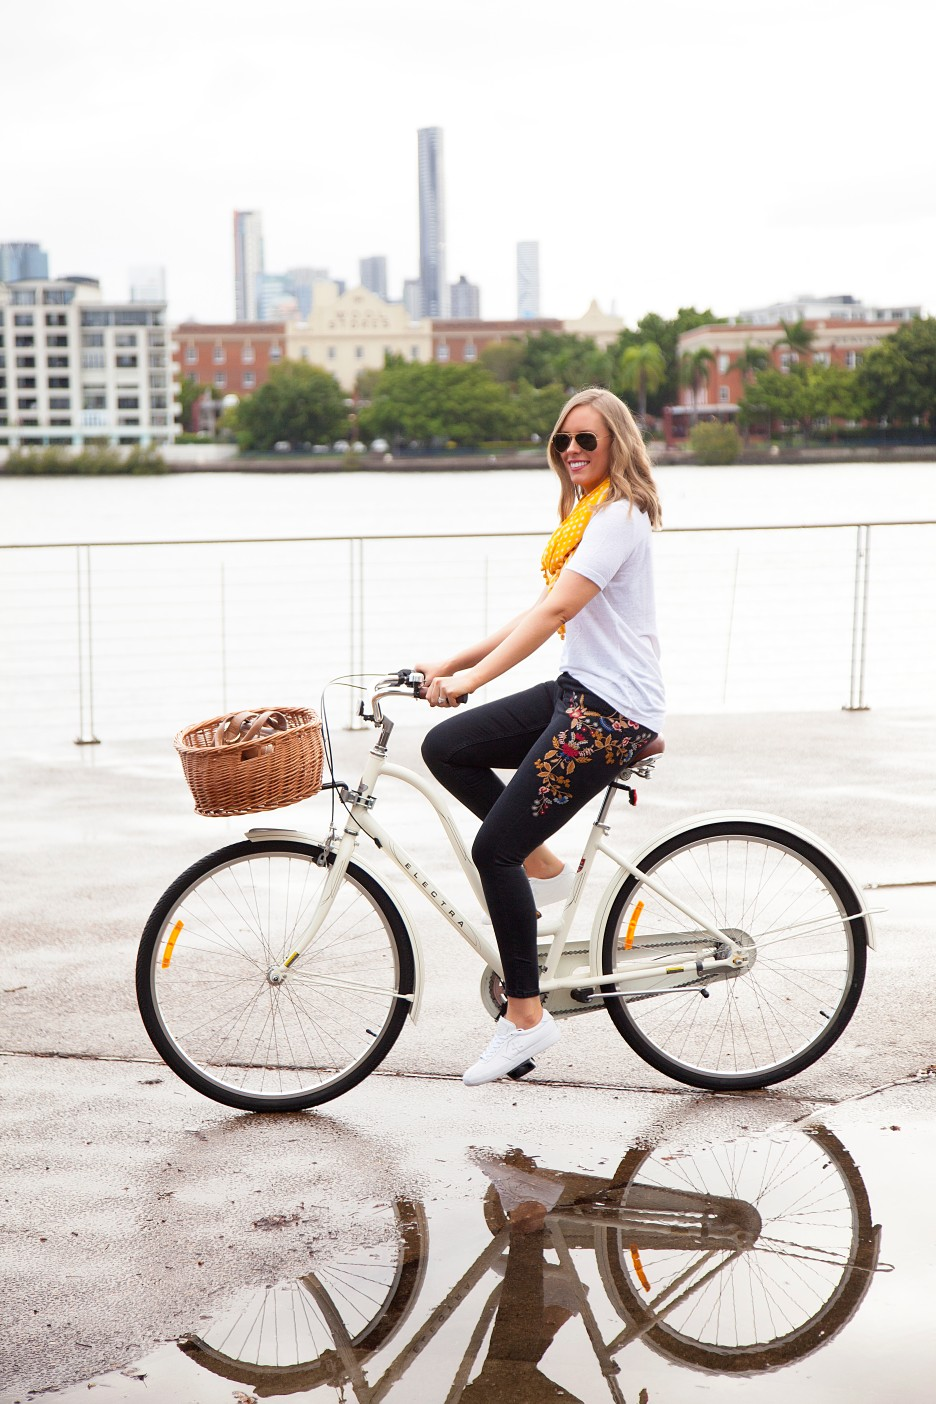 casual outfit ideas embroidered jeans and white tee marigold trend fashion blogger cute cream bike with basket electra cruiser bike lauren slade style elixir blog 2